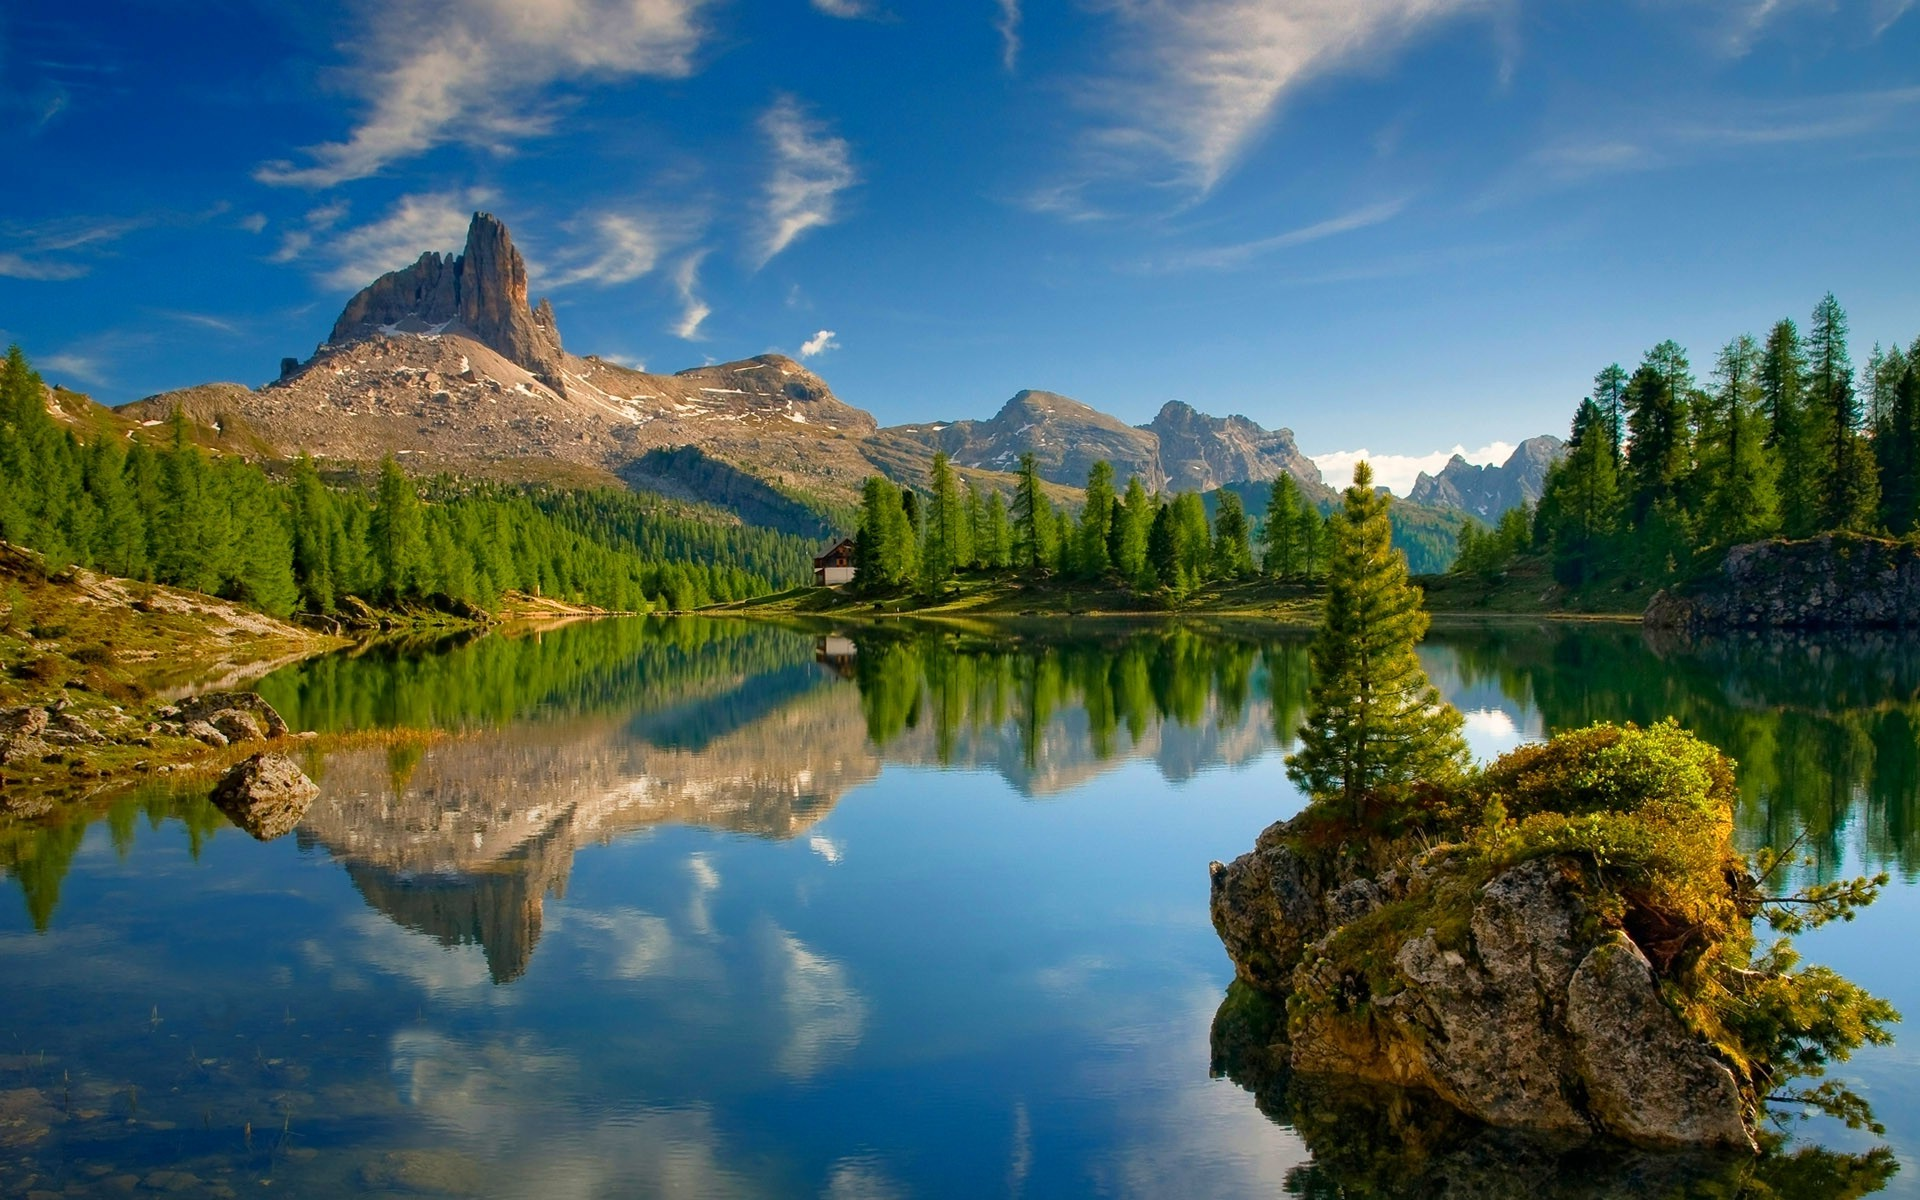 lake Dolomites mountains Forest Mountains Reflection Alps Summer Trees Cabin Nature